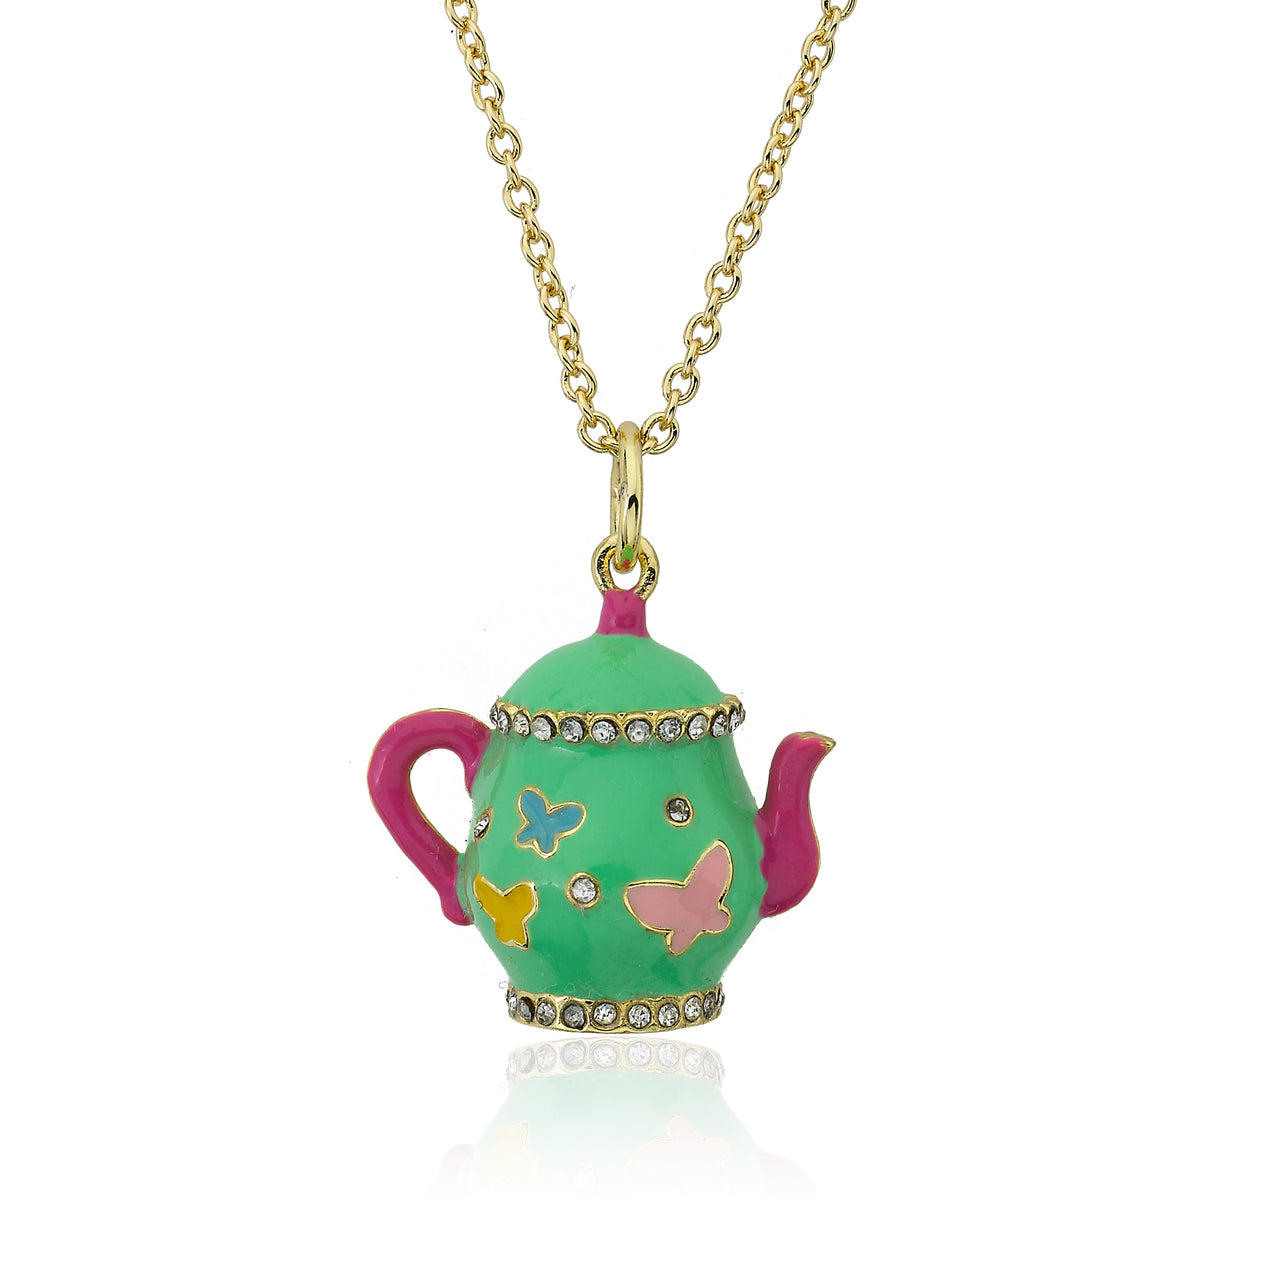 Tea 4 Two Crystal Tea Pot Necklace 5